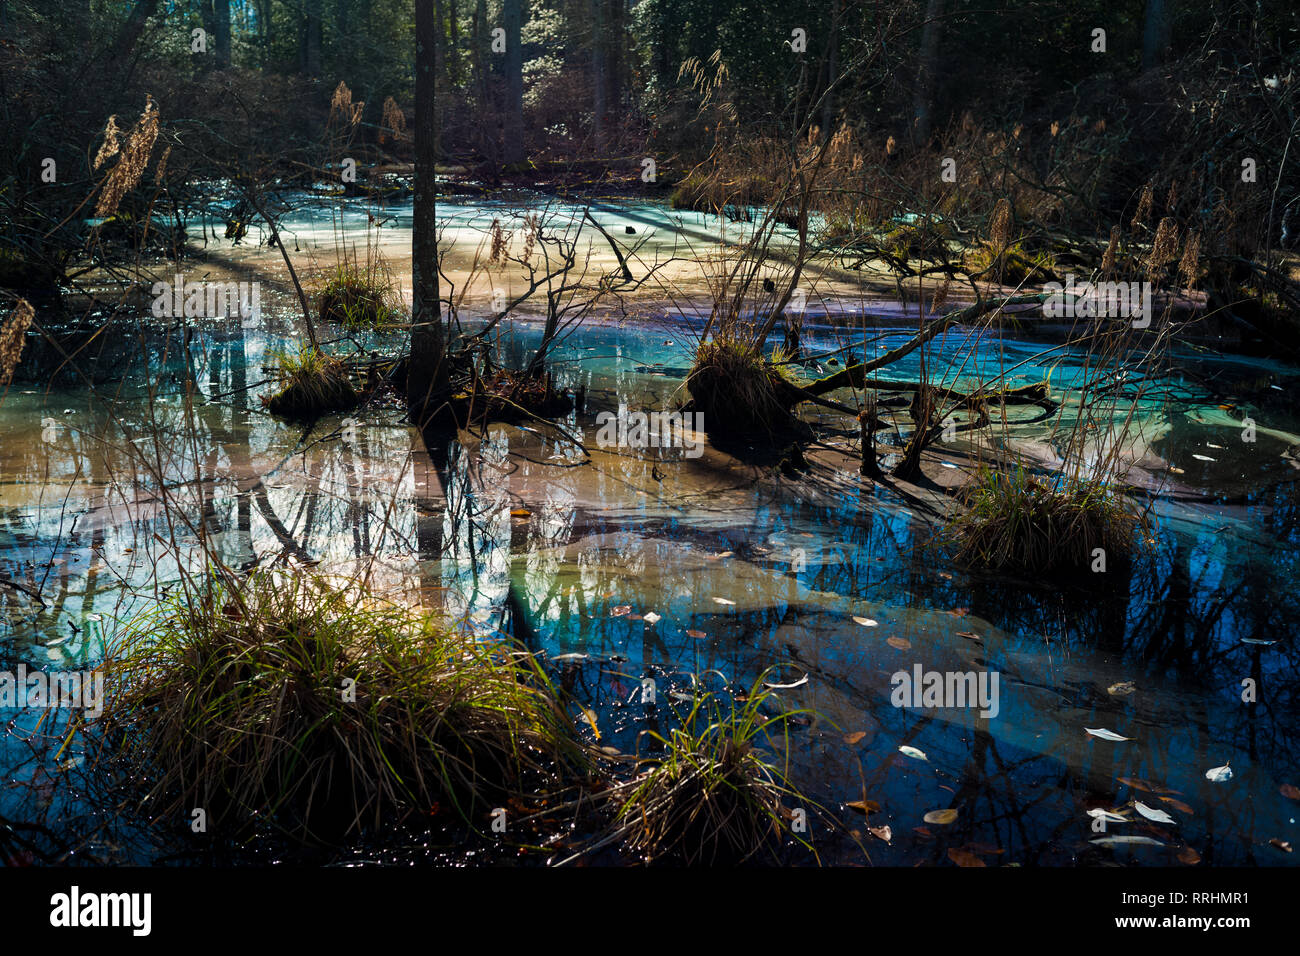 Colorful toxic water pollution in wetland environmental hazard environment. - Stock Image